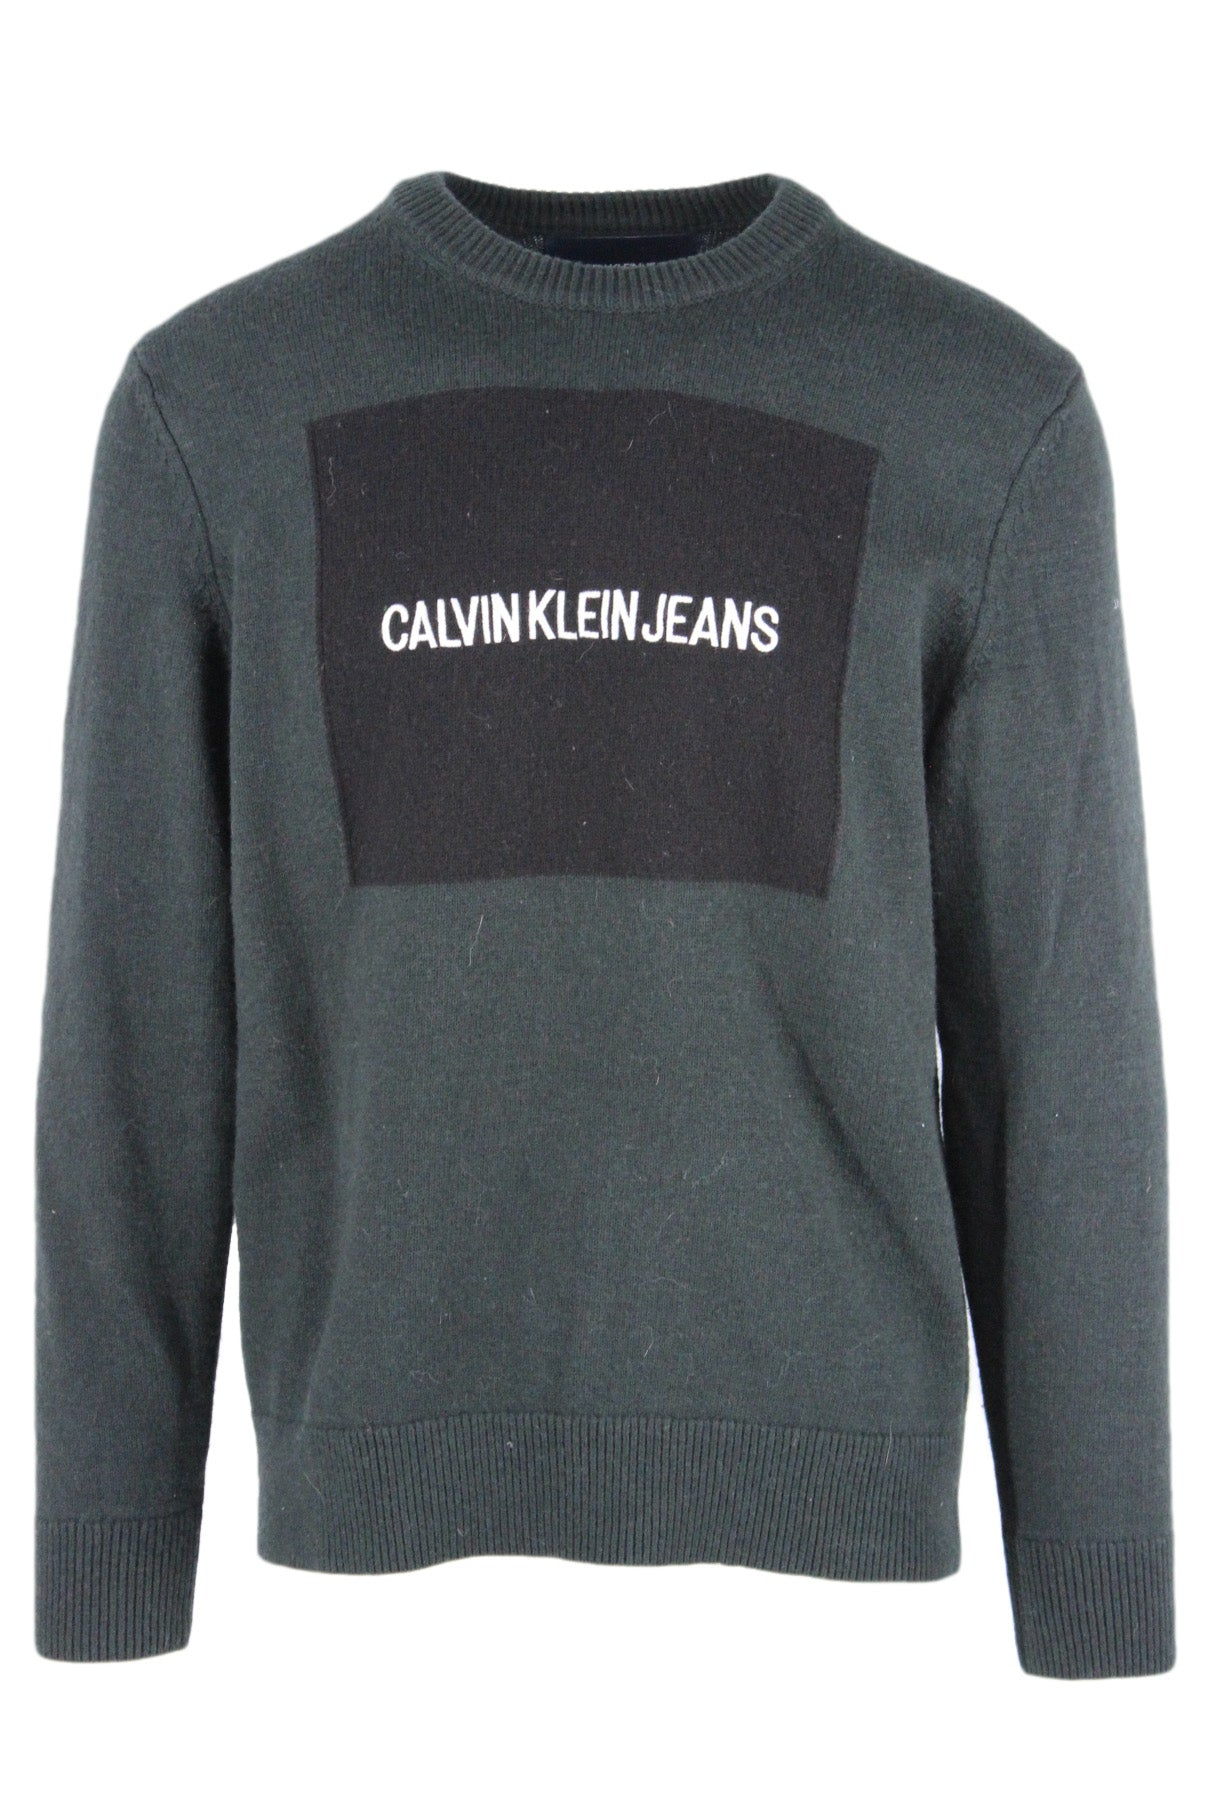 calvin klein jeans dark green pullover wool blend knit sweater. features 'calvin klein jeans' block logo embroidered at chest with ribbed collar, cuffs, and hem.